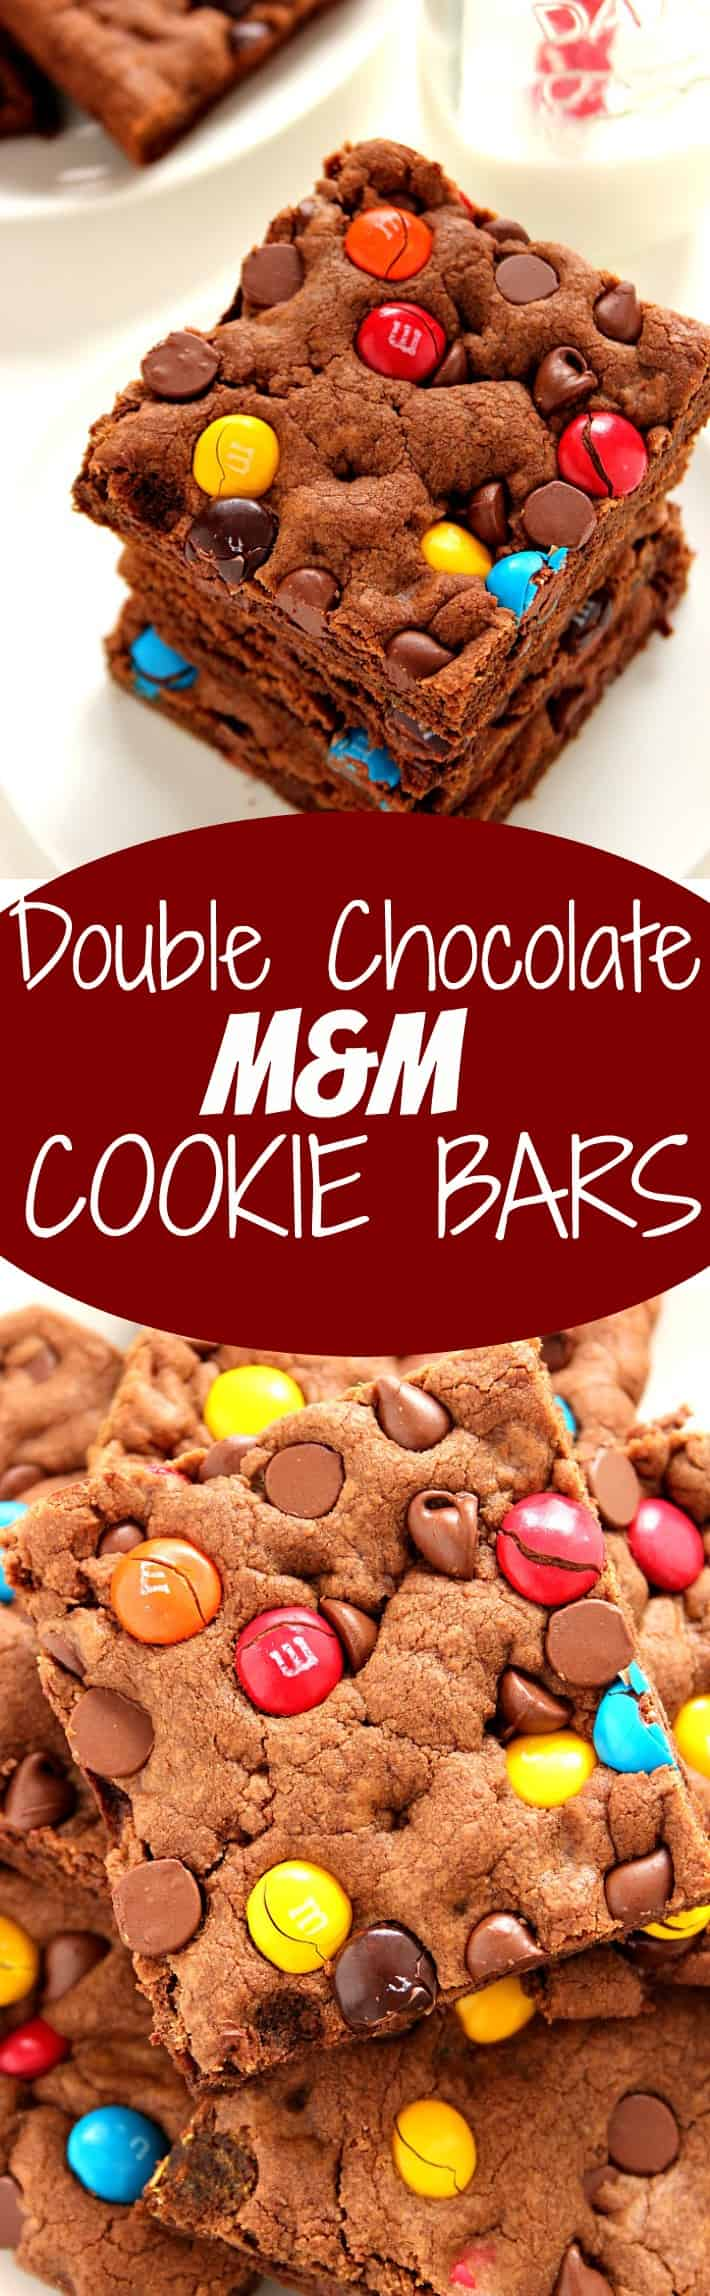 double chocolate mm cookie bars long Double Chocolate M&M Cookie Bars Recipe